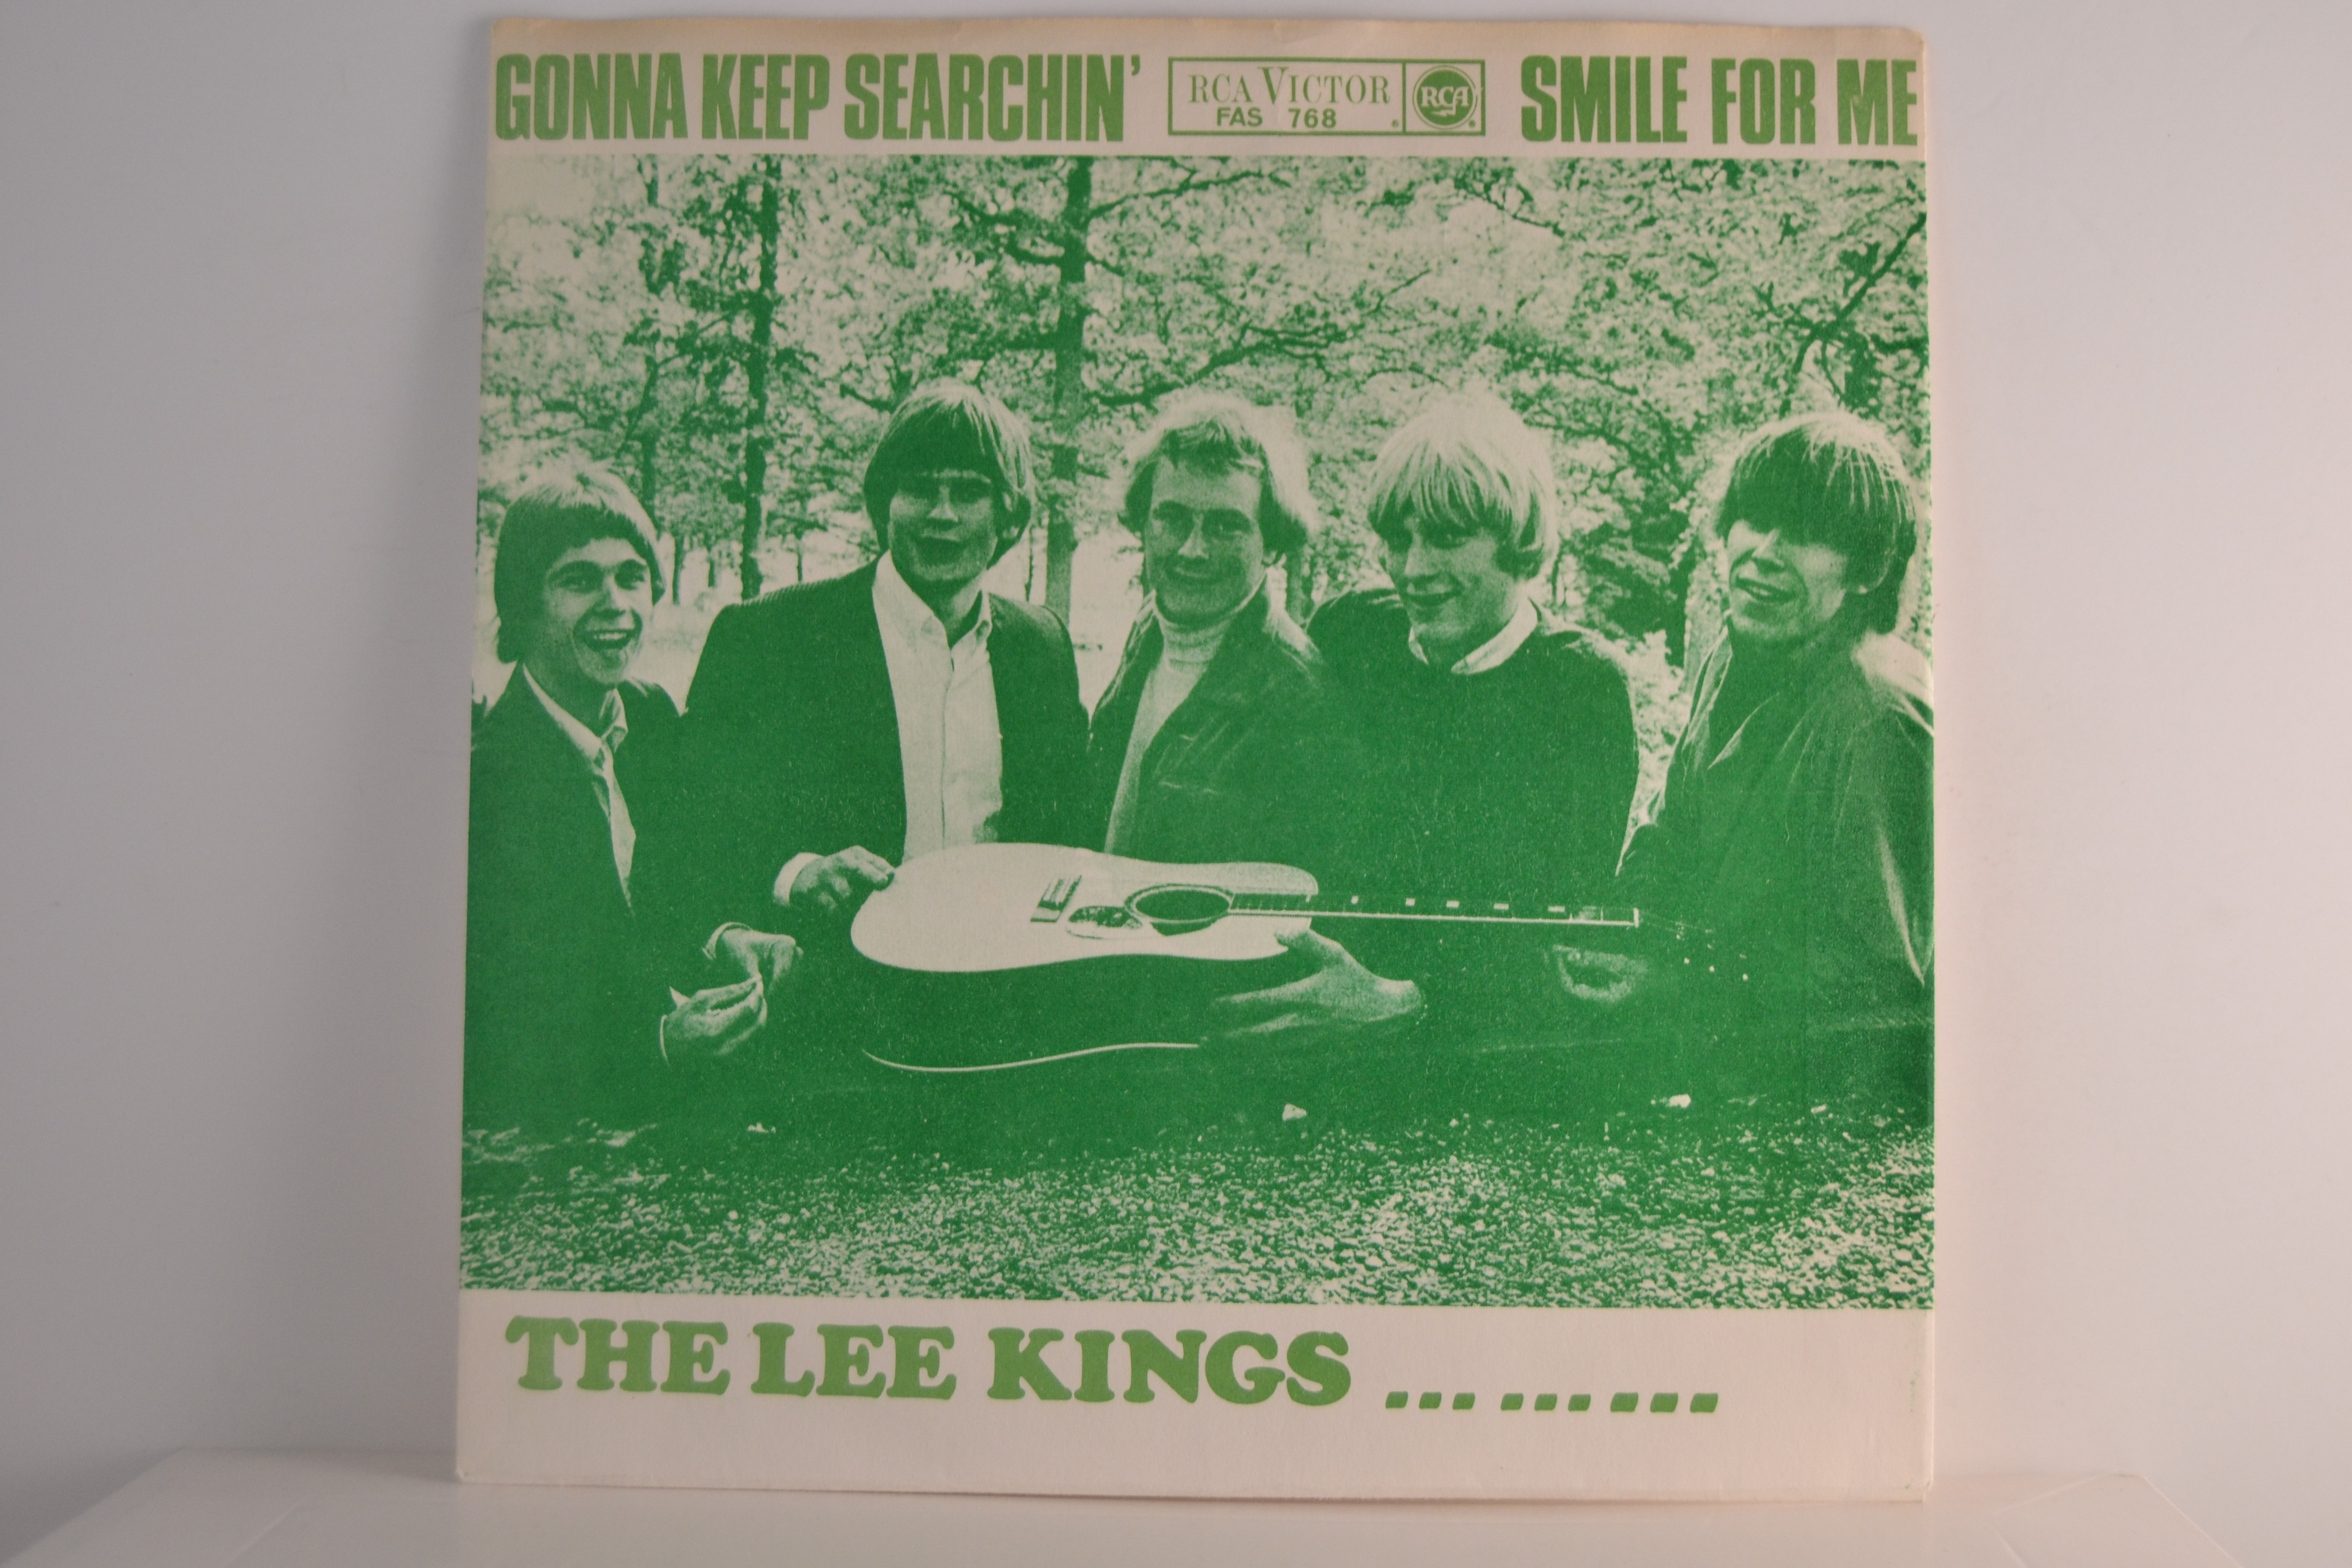 LEE KINGS : Gonna keep searchin' / Smile for me